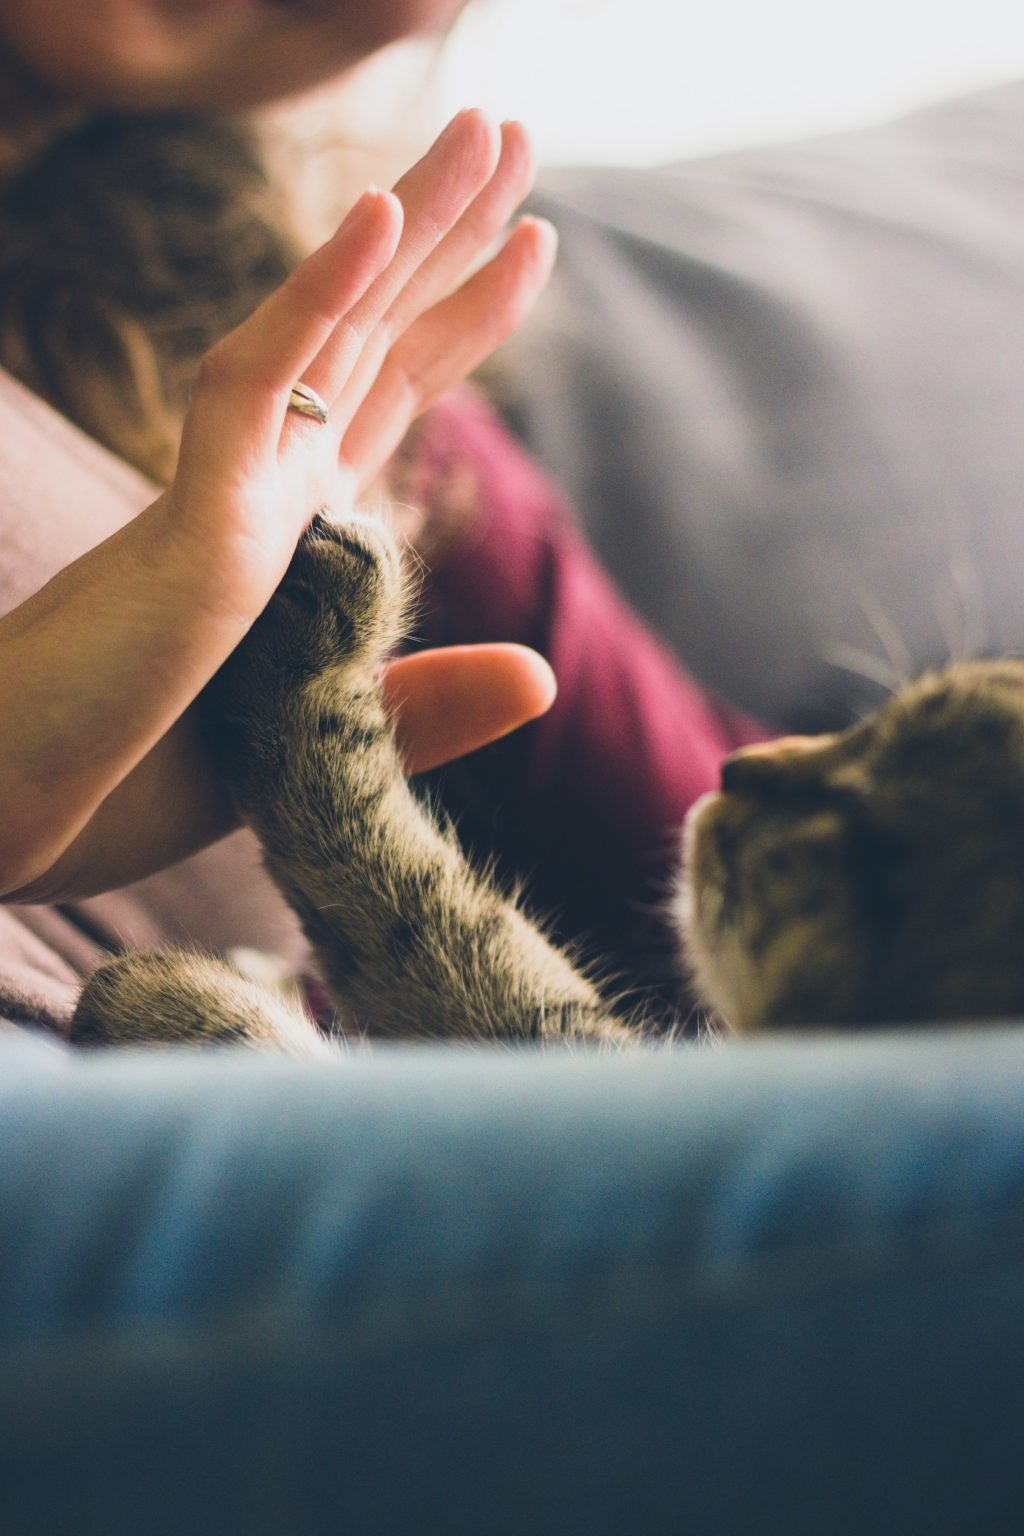 Declining Suicide Rates, Happy Cats, and More Good News to Start the Day